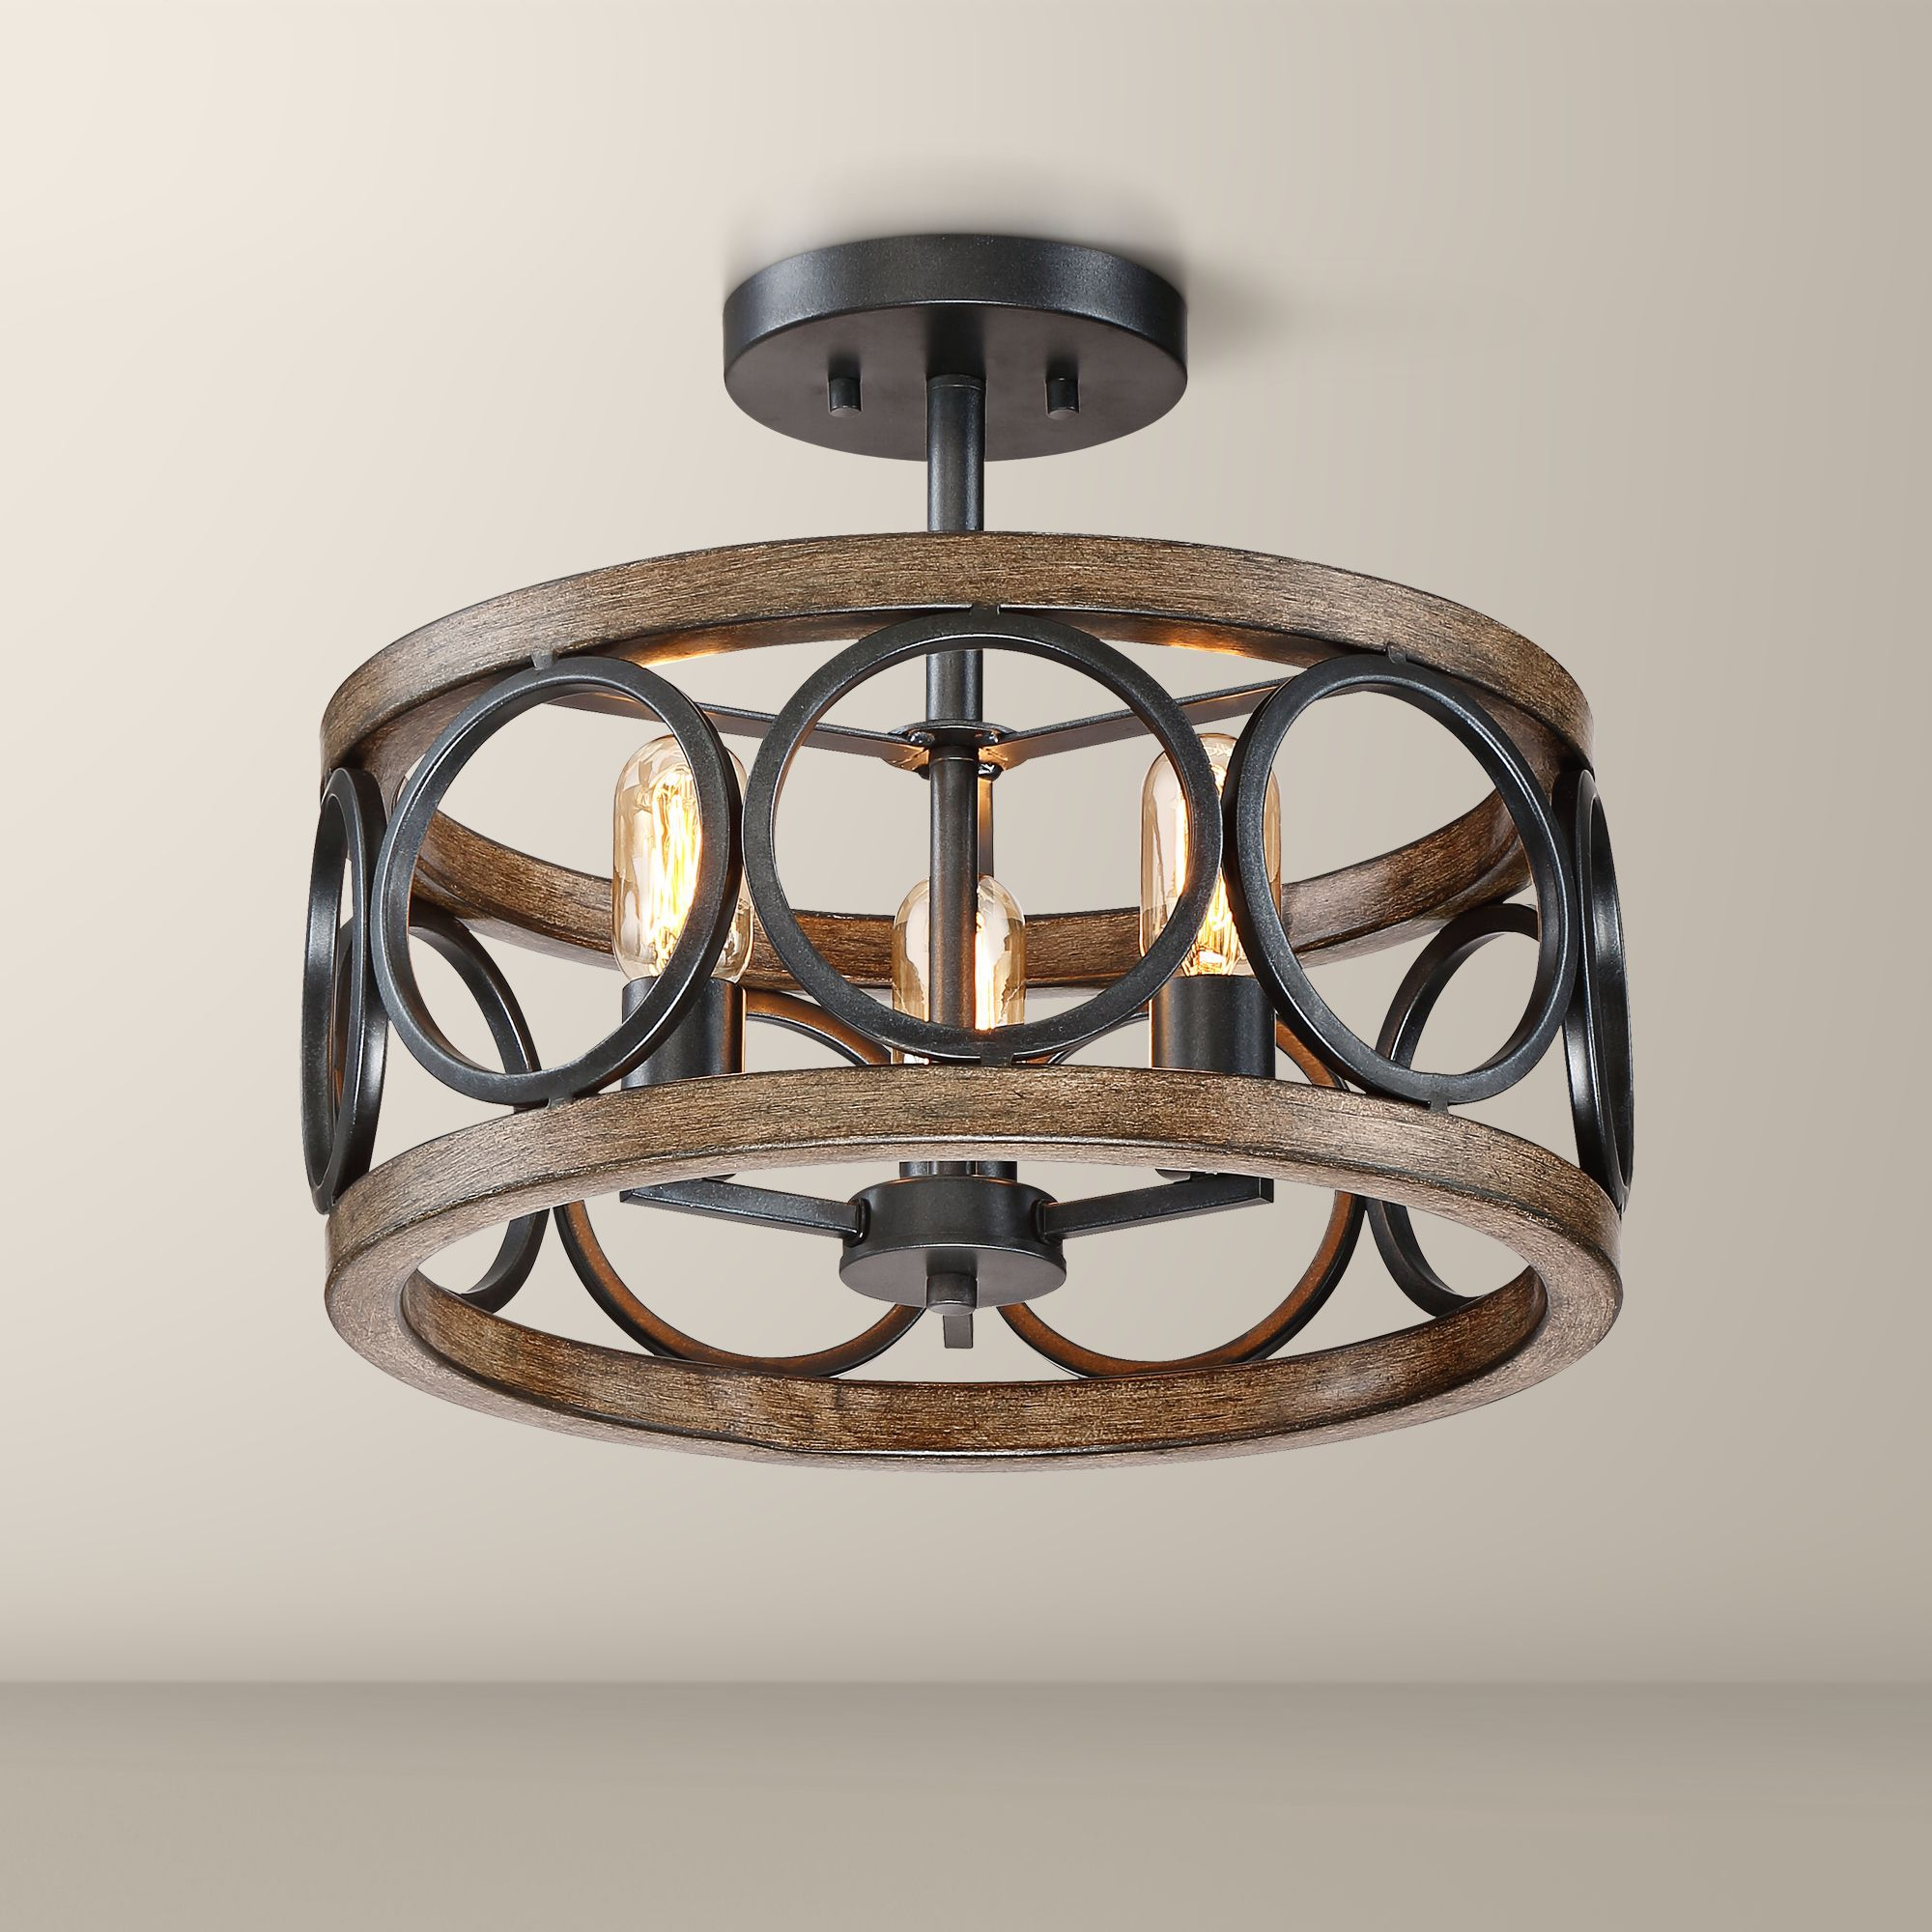 Home in 2020 Farmhouse ceiling light, Rustic ceiling